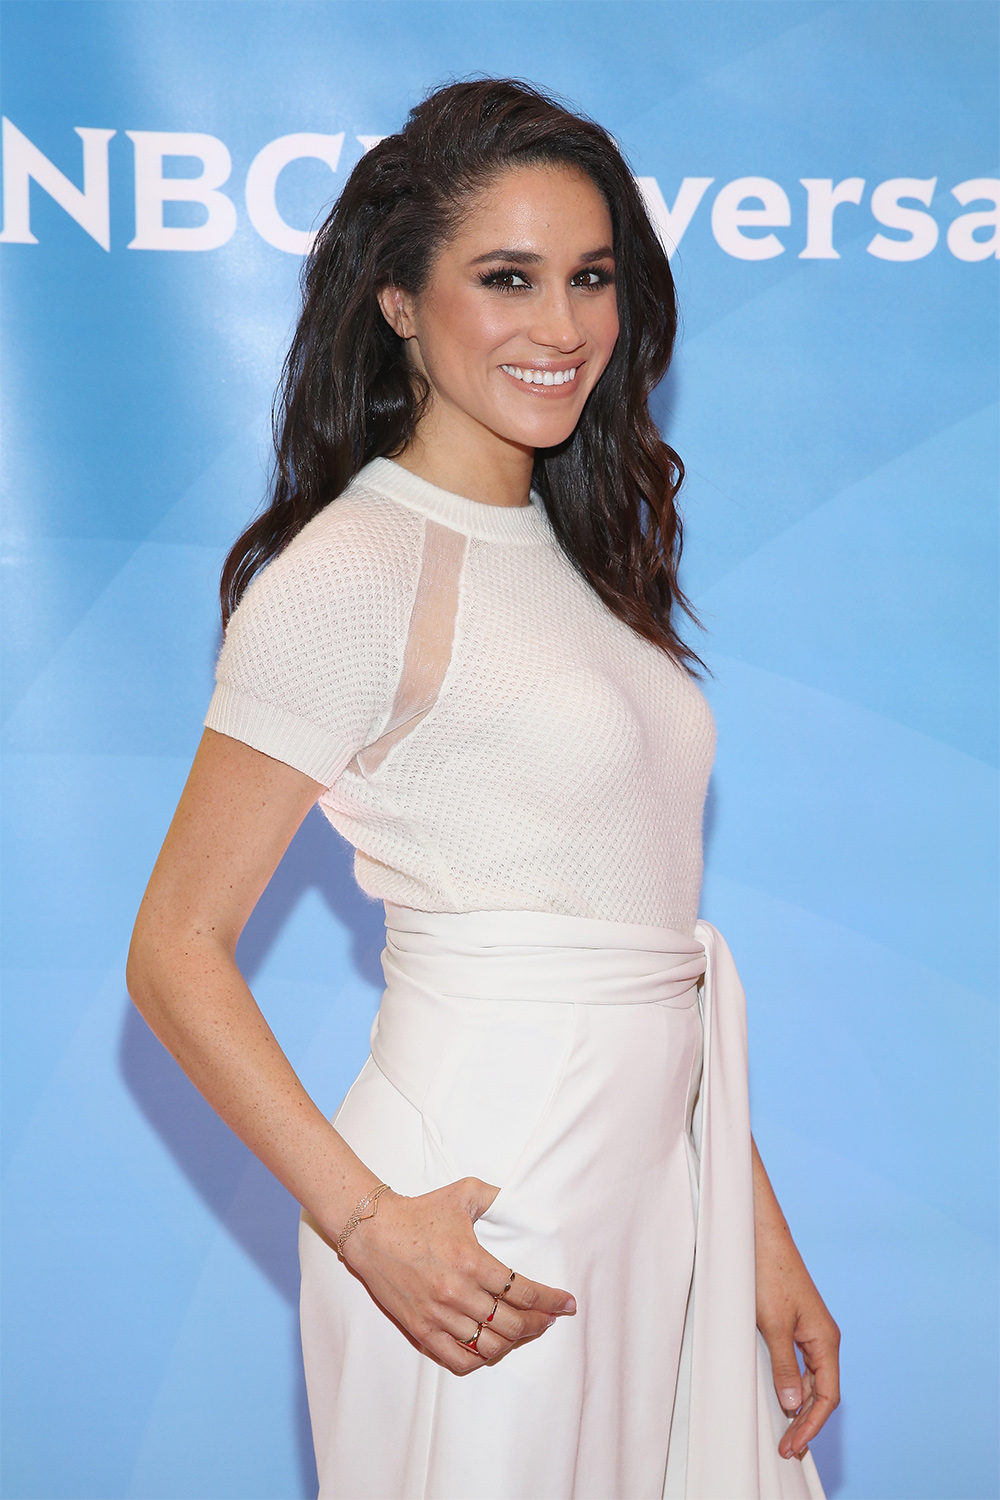 Meghan Markle at the 2015 NBC New York Summer Press Day